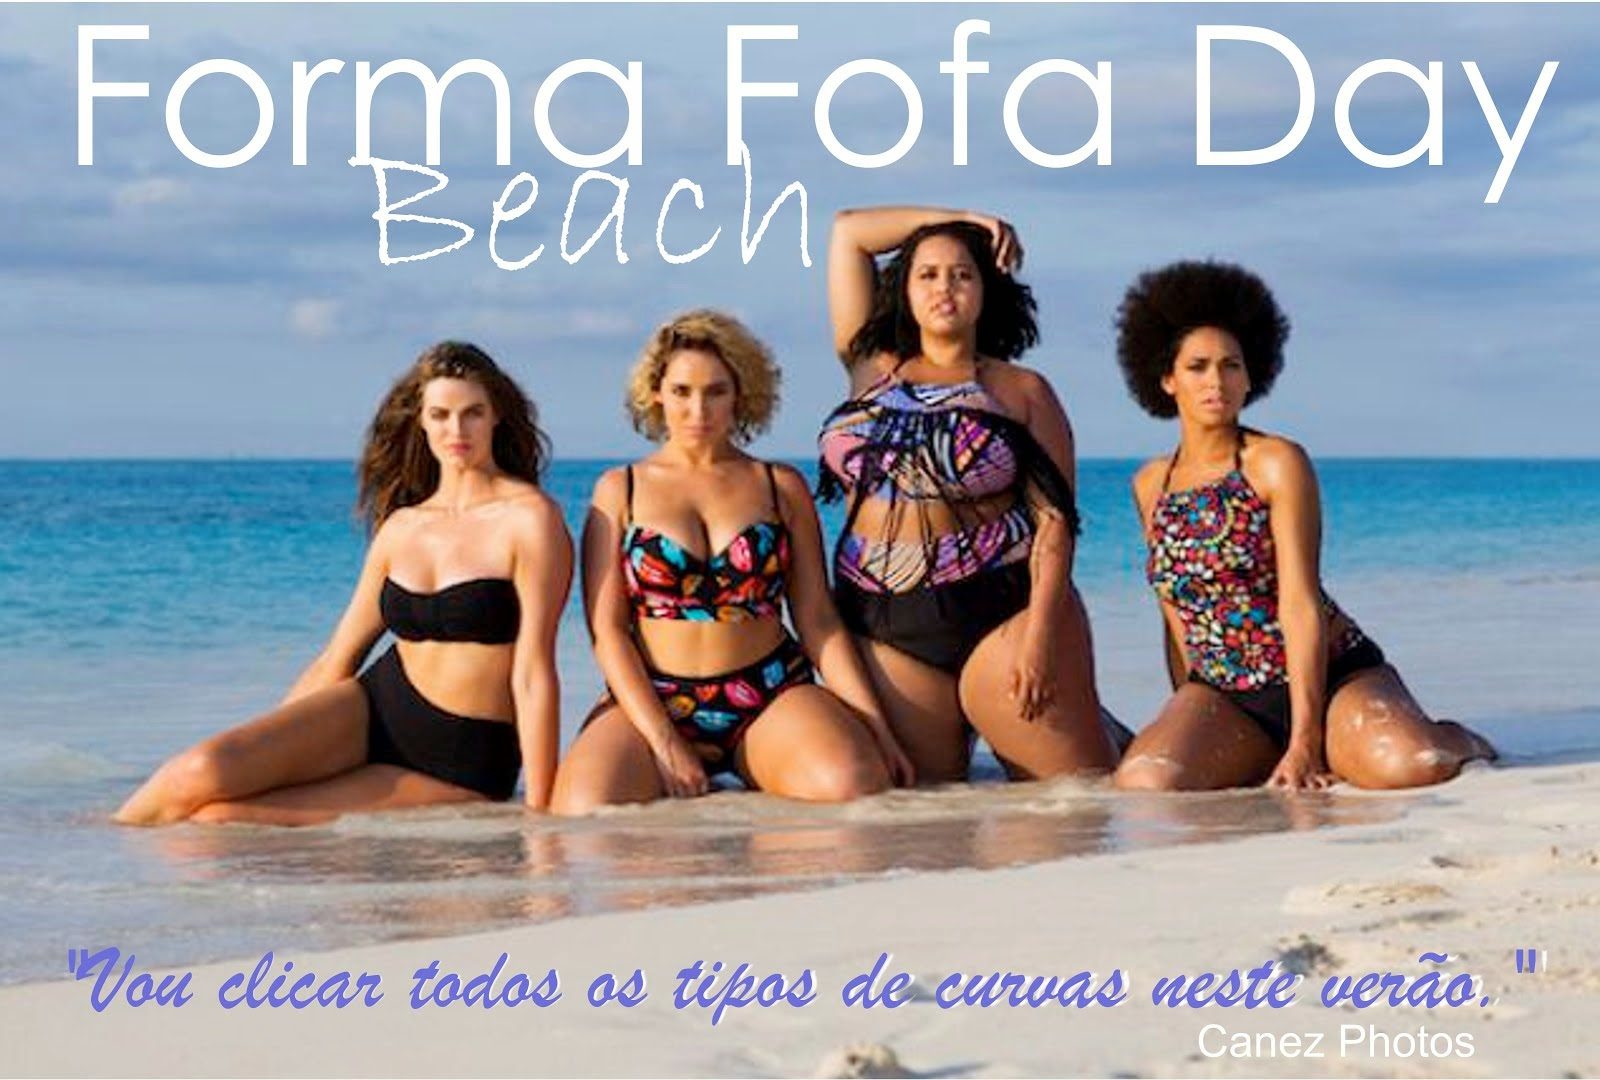 Forma Fofa Day Beach